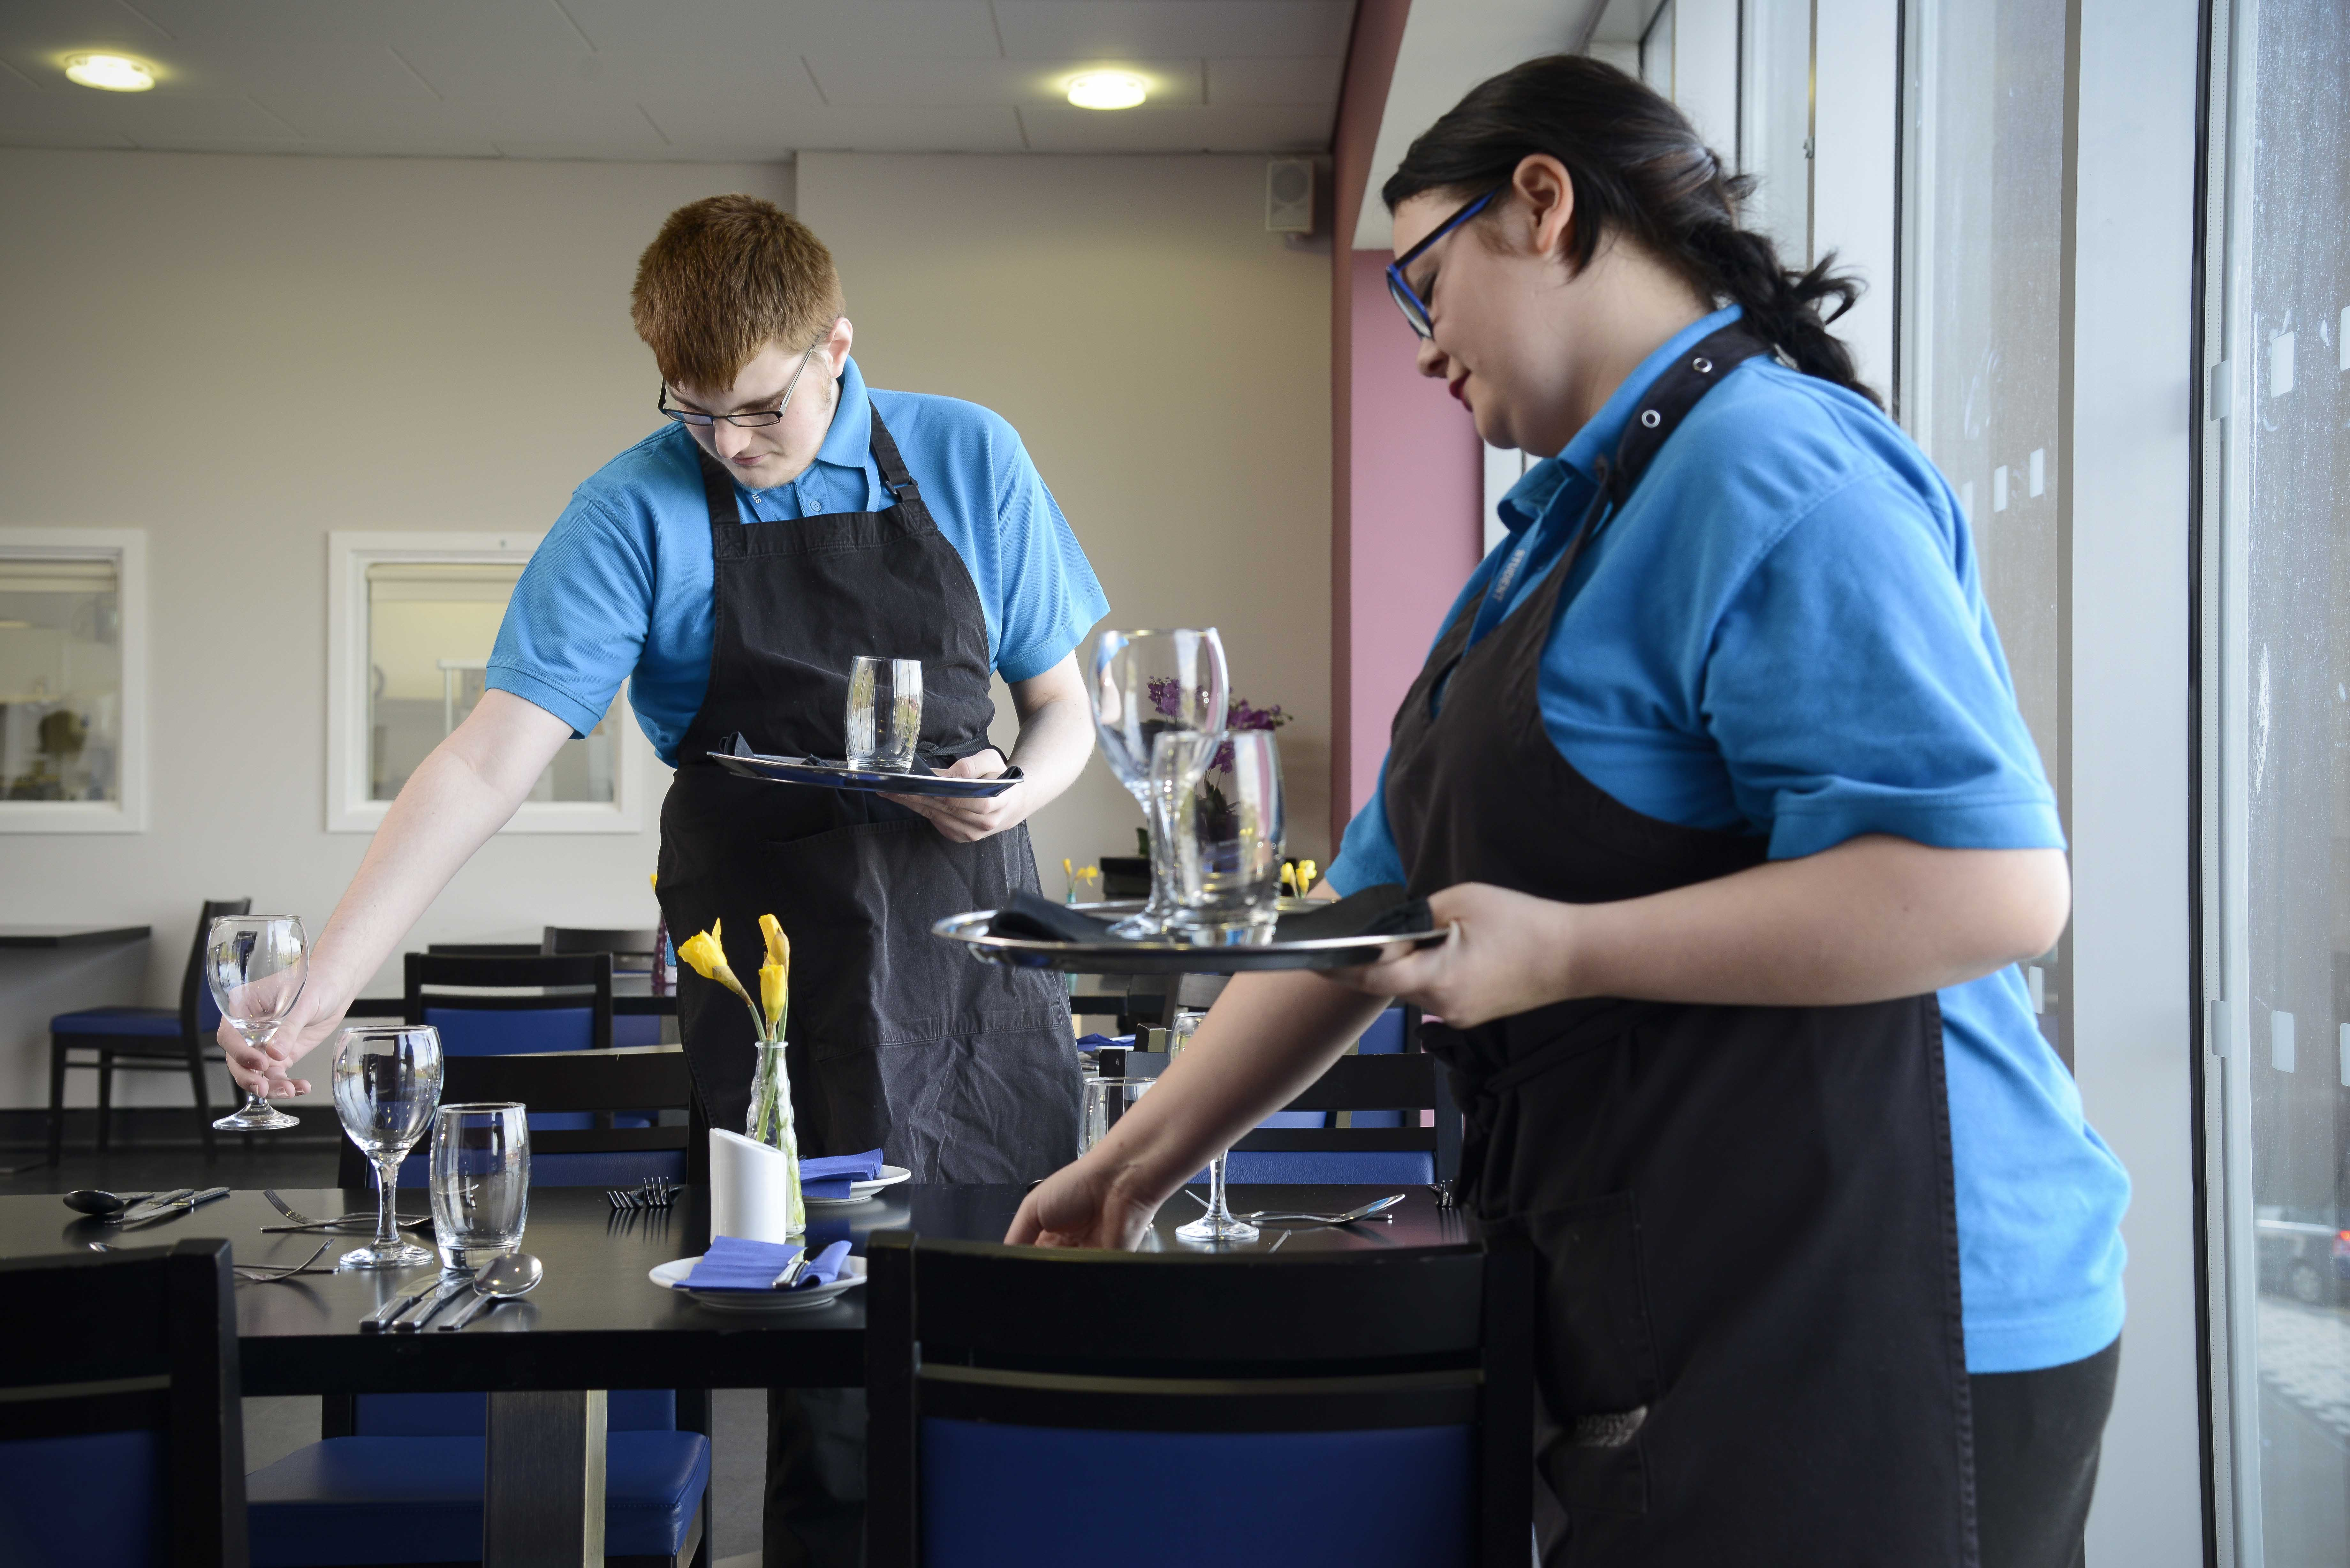 VTCT Entry Level 3 Diploma in Vocational Studies - Hospitality and Catering (QCF)